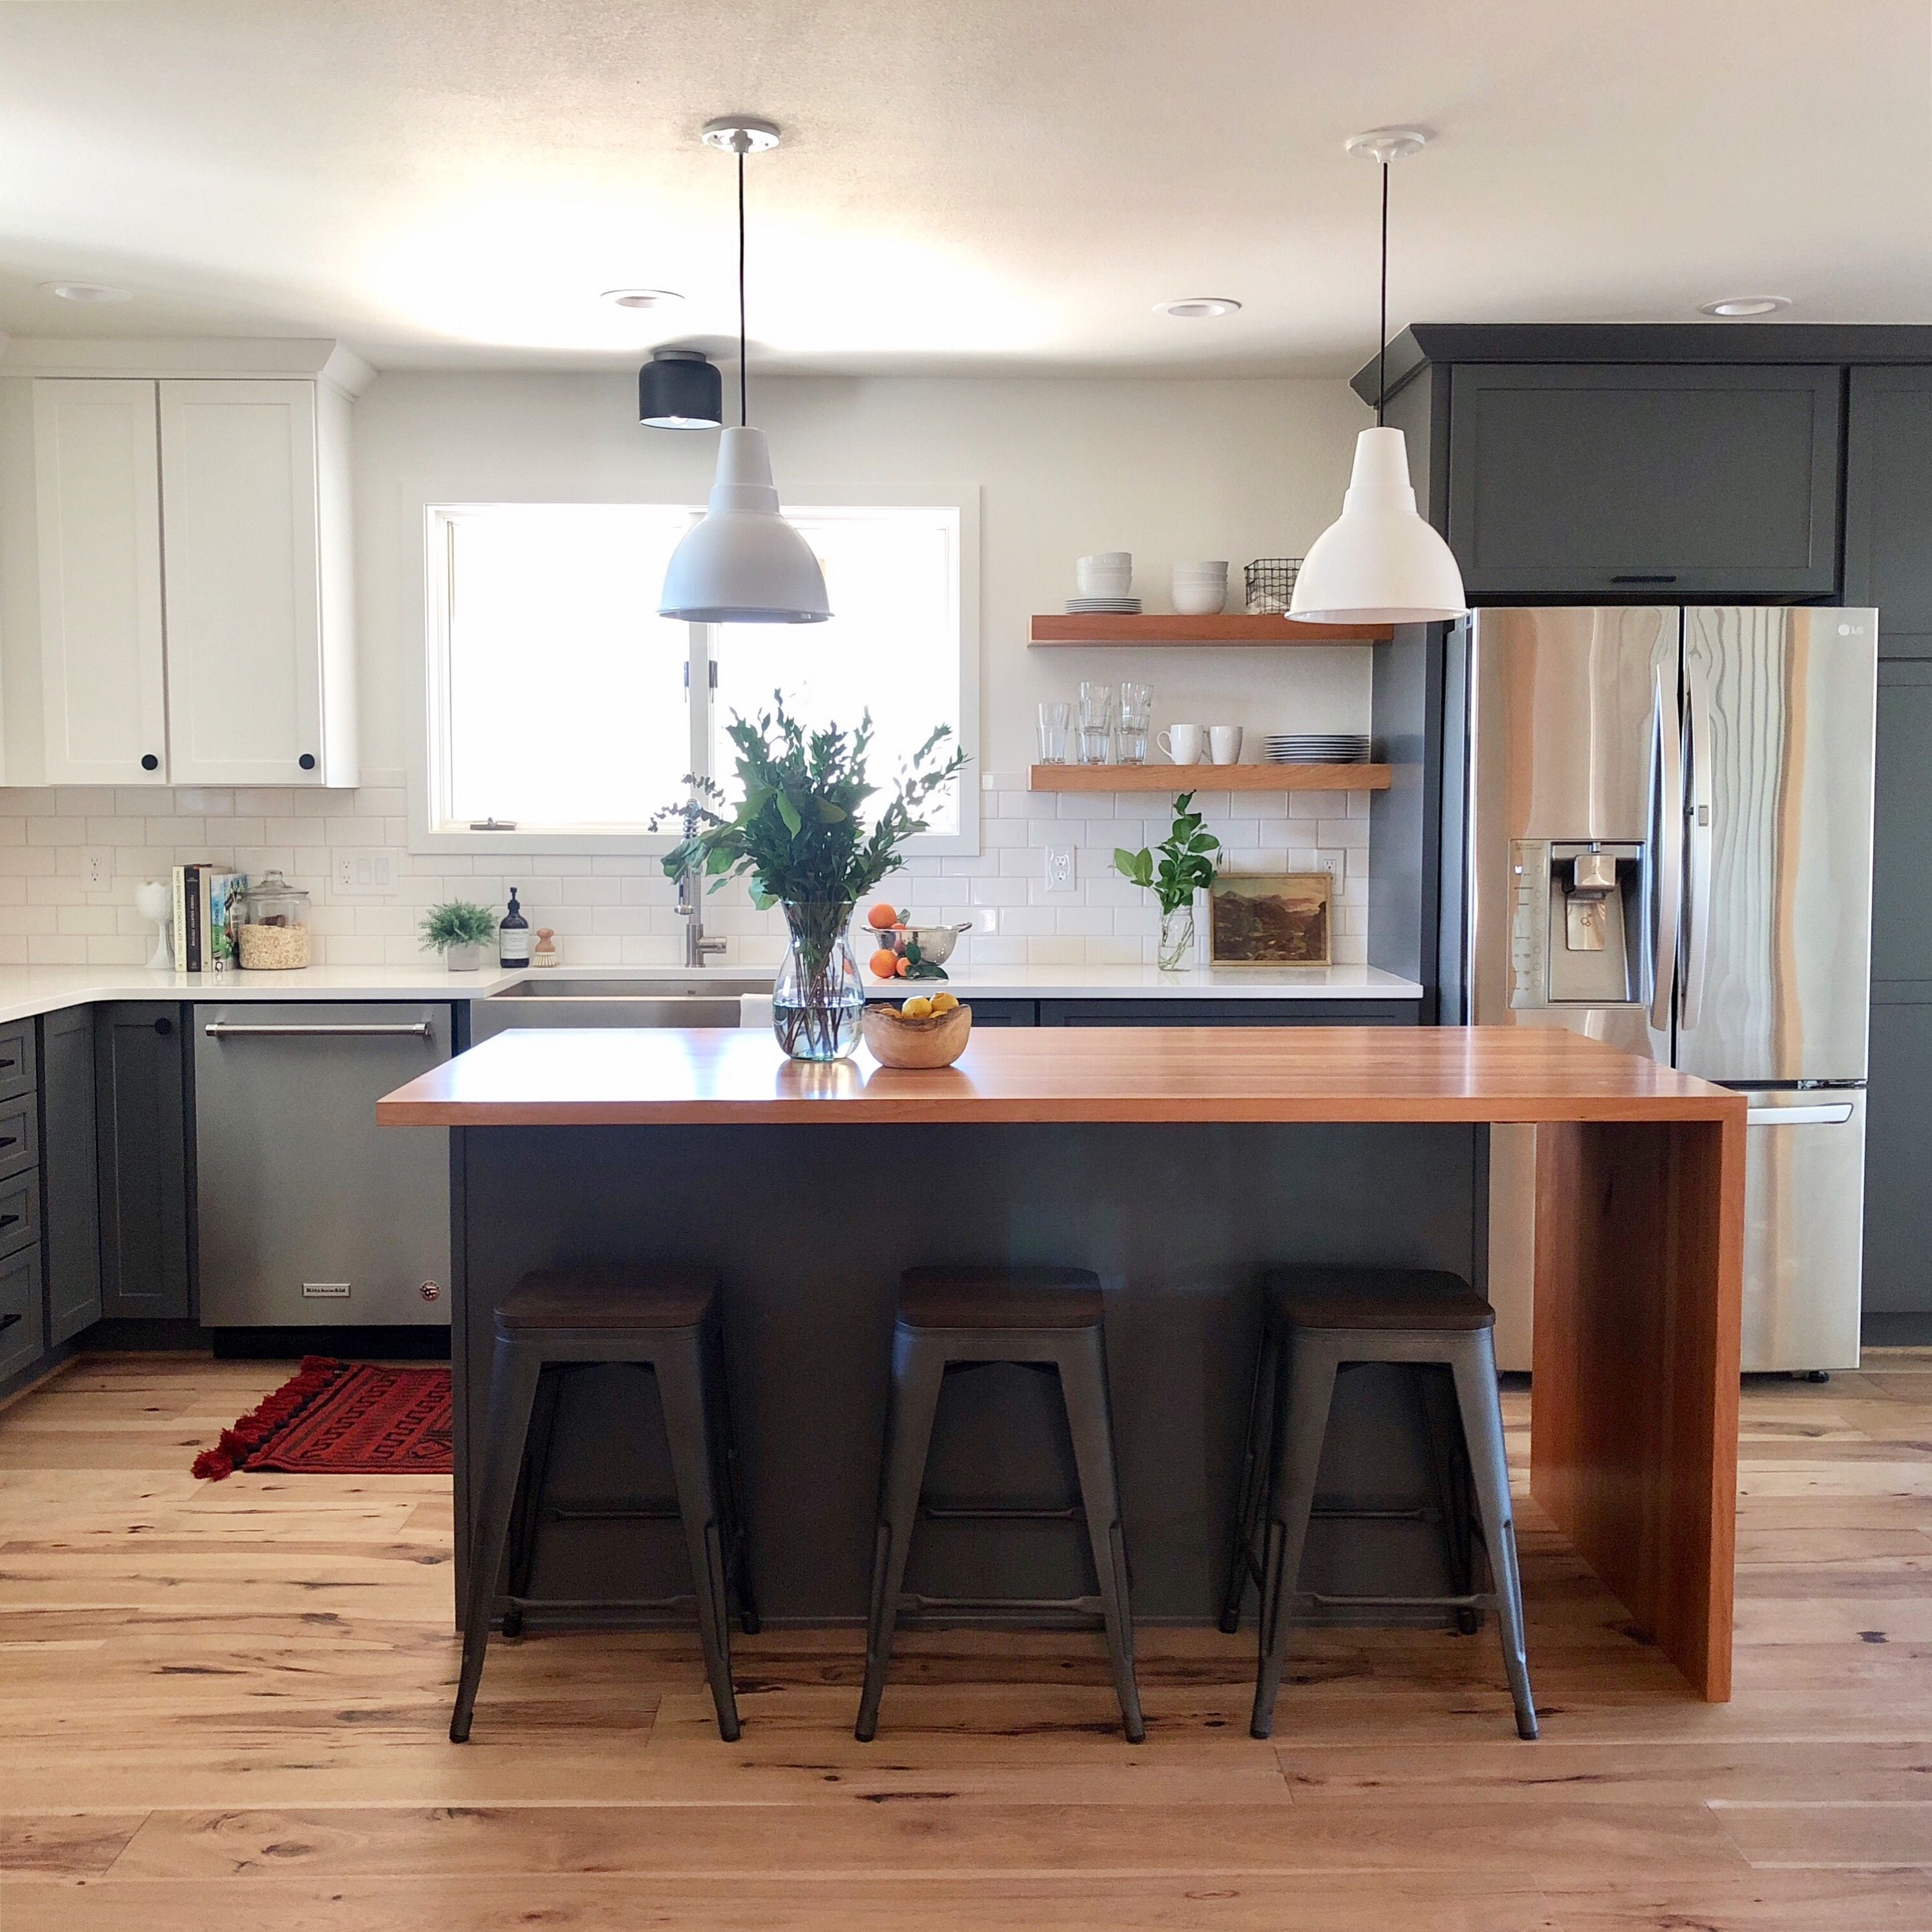 Butcher Block Waterfall Island And Gray Cabinets Small Kitchen Furniture Kitchen Design Small Butcher Block Island Kitchen